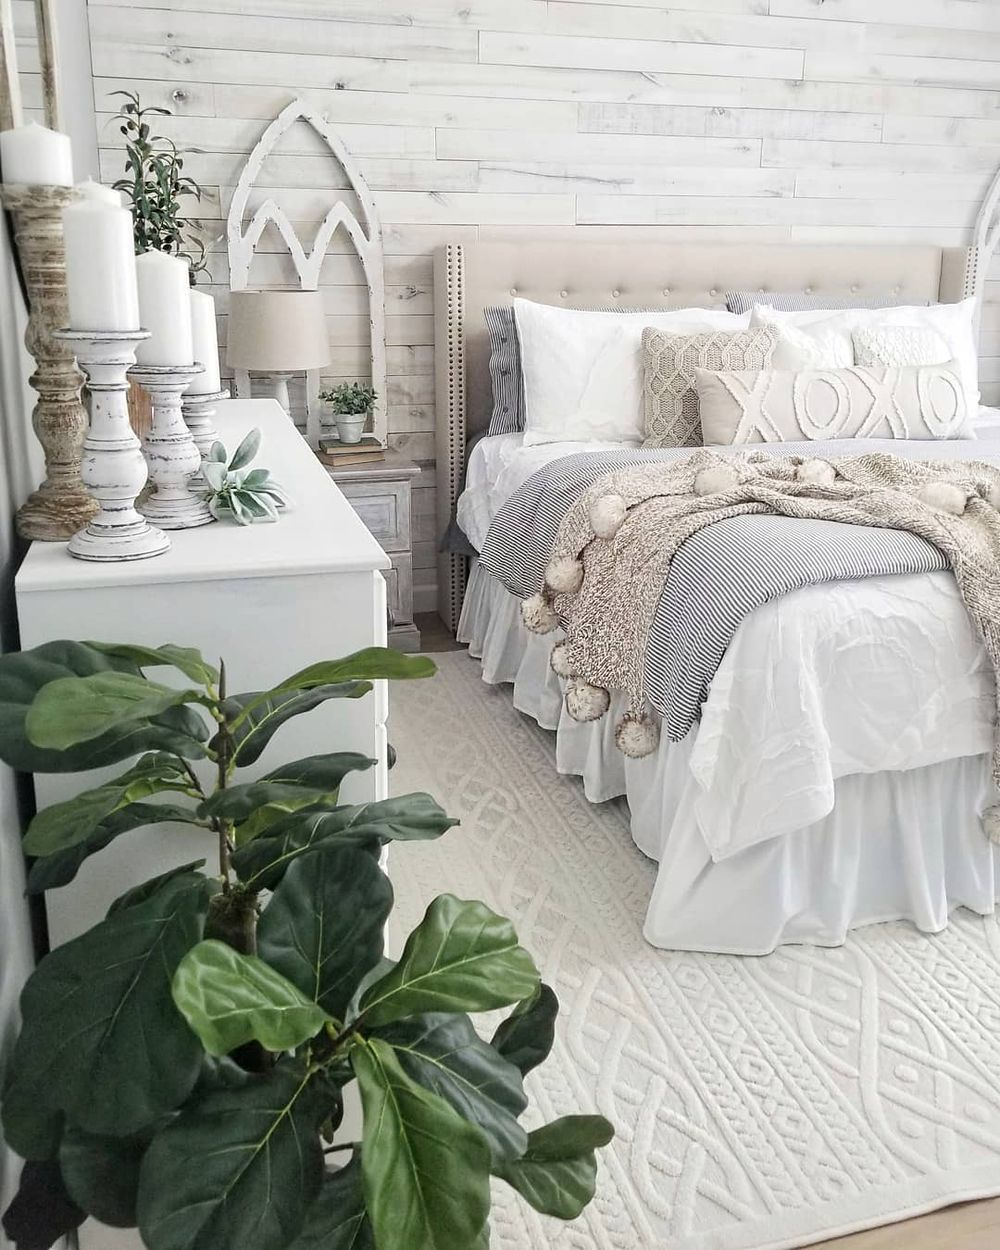 Winter blankets in a farmhouse bedroom @blessed_ranch